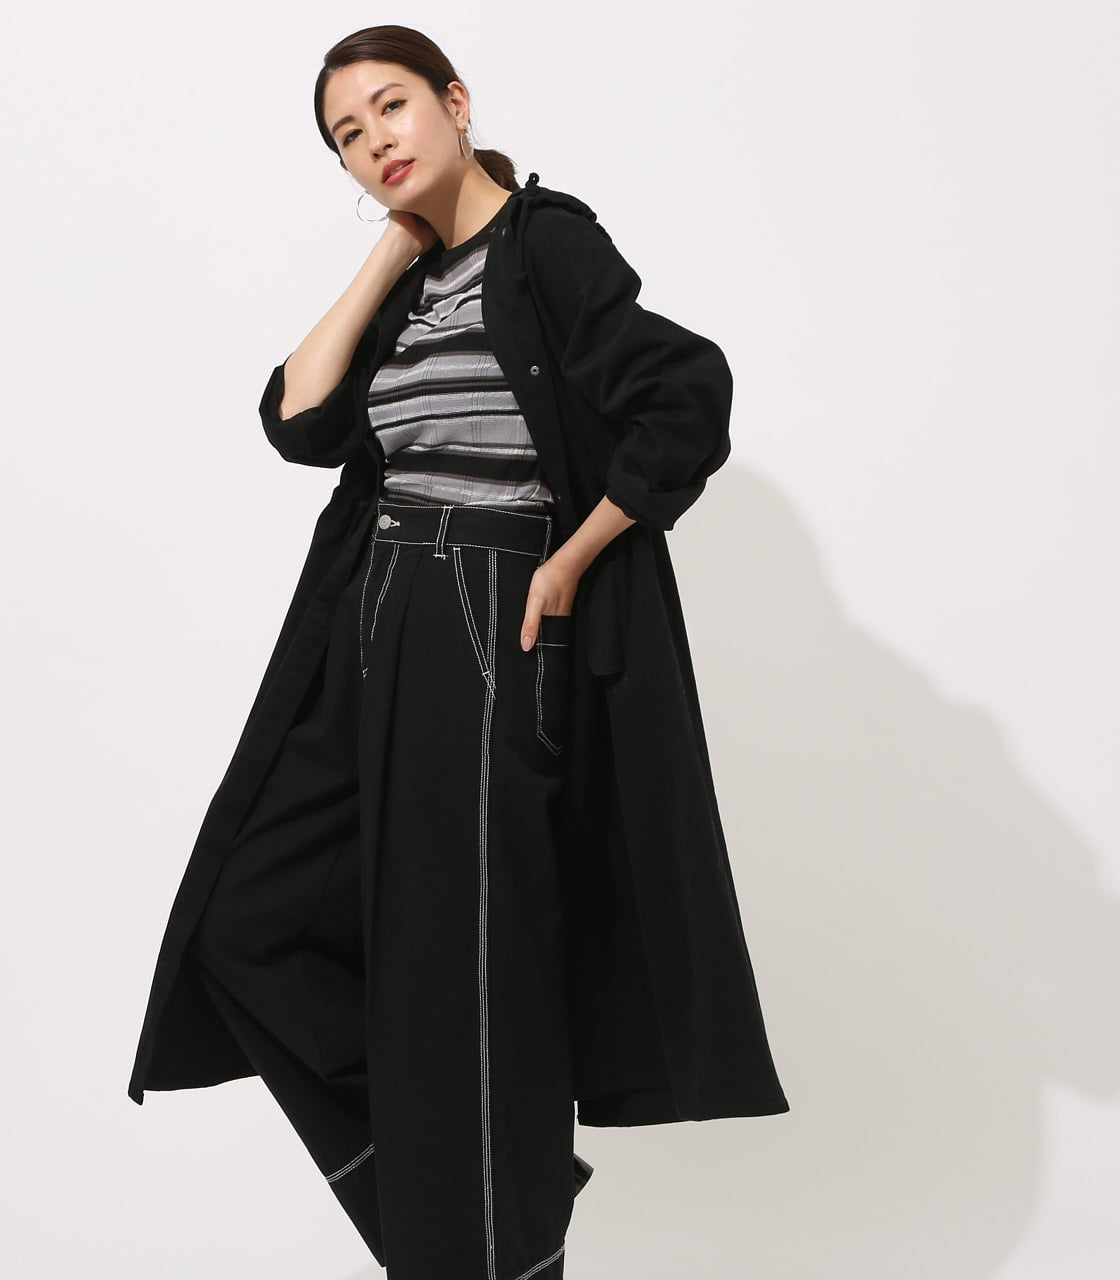 【AZUL BY MOUSSY】LOOSE MODS COAT 【MOOK49掲載 90044】 詳細画像 BLK 2